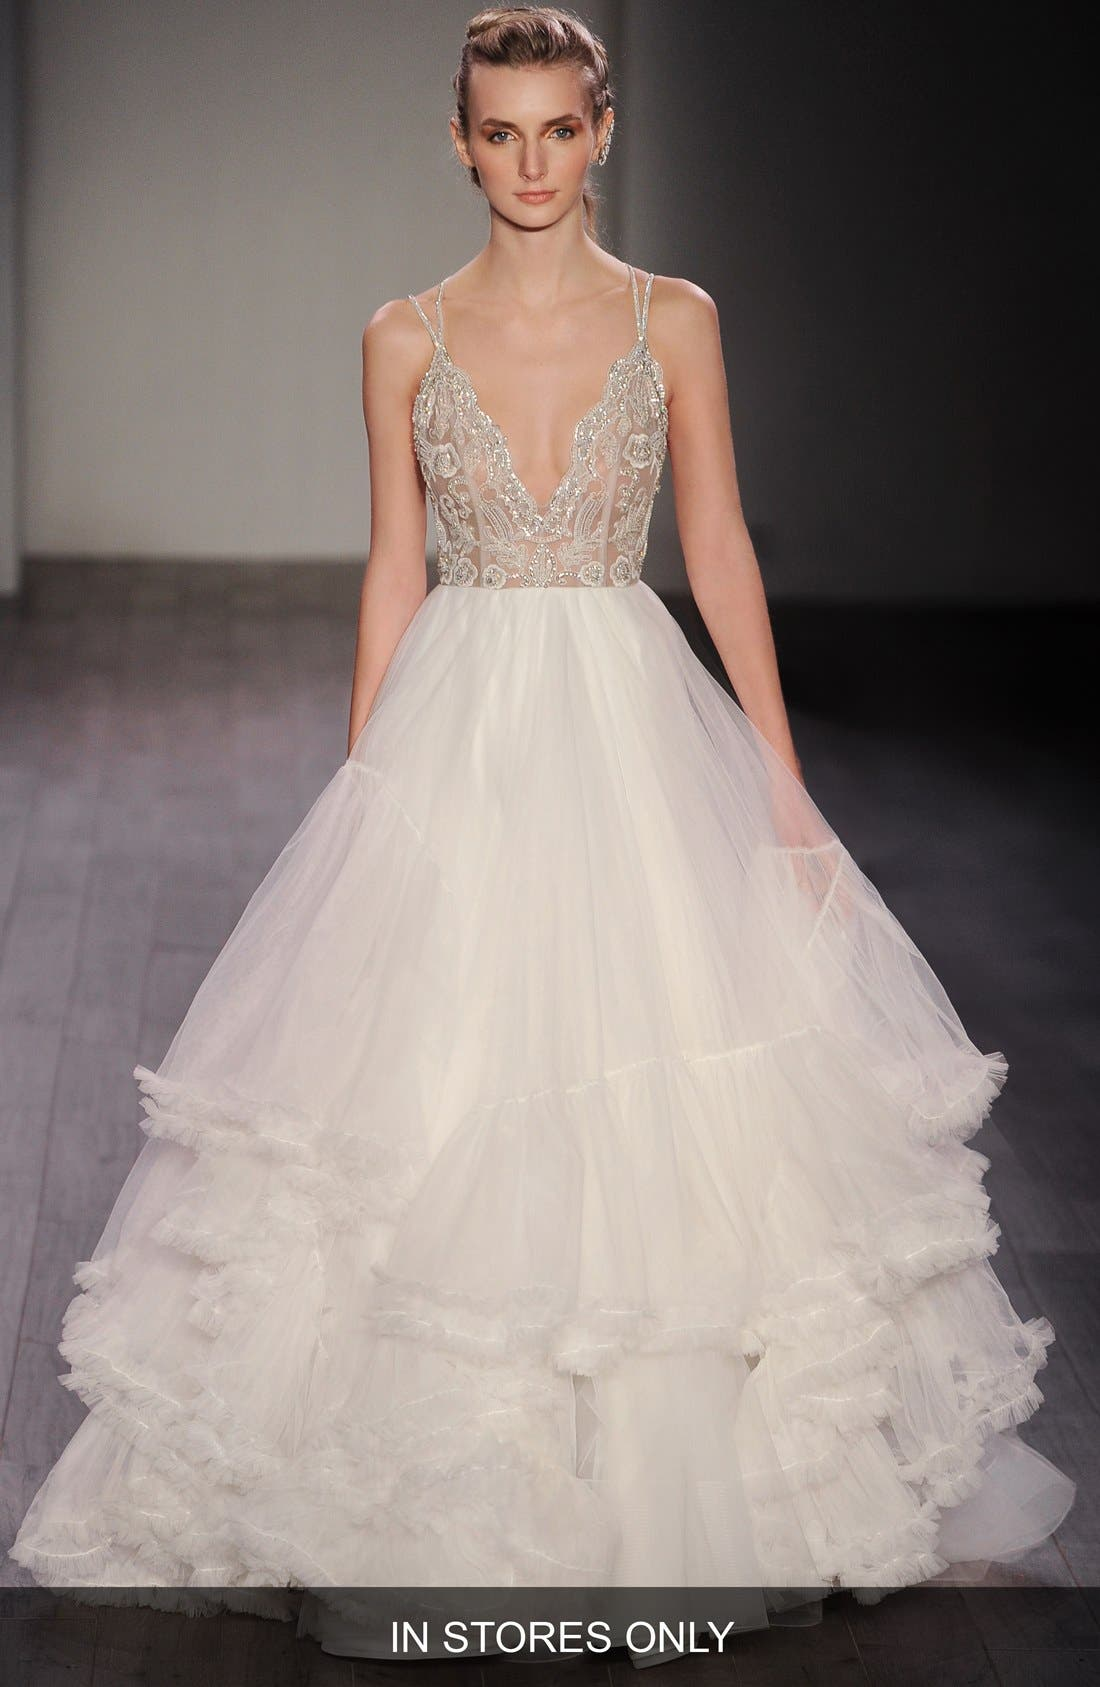 HAYLEY PAIGE 'Georgie' Embellished Bodice Tulle Ballgown